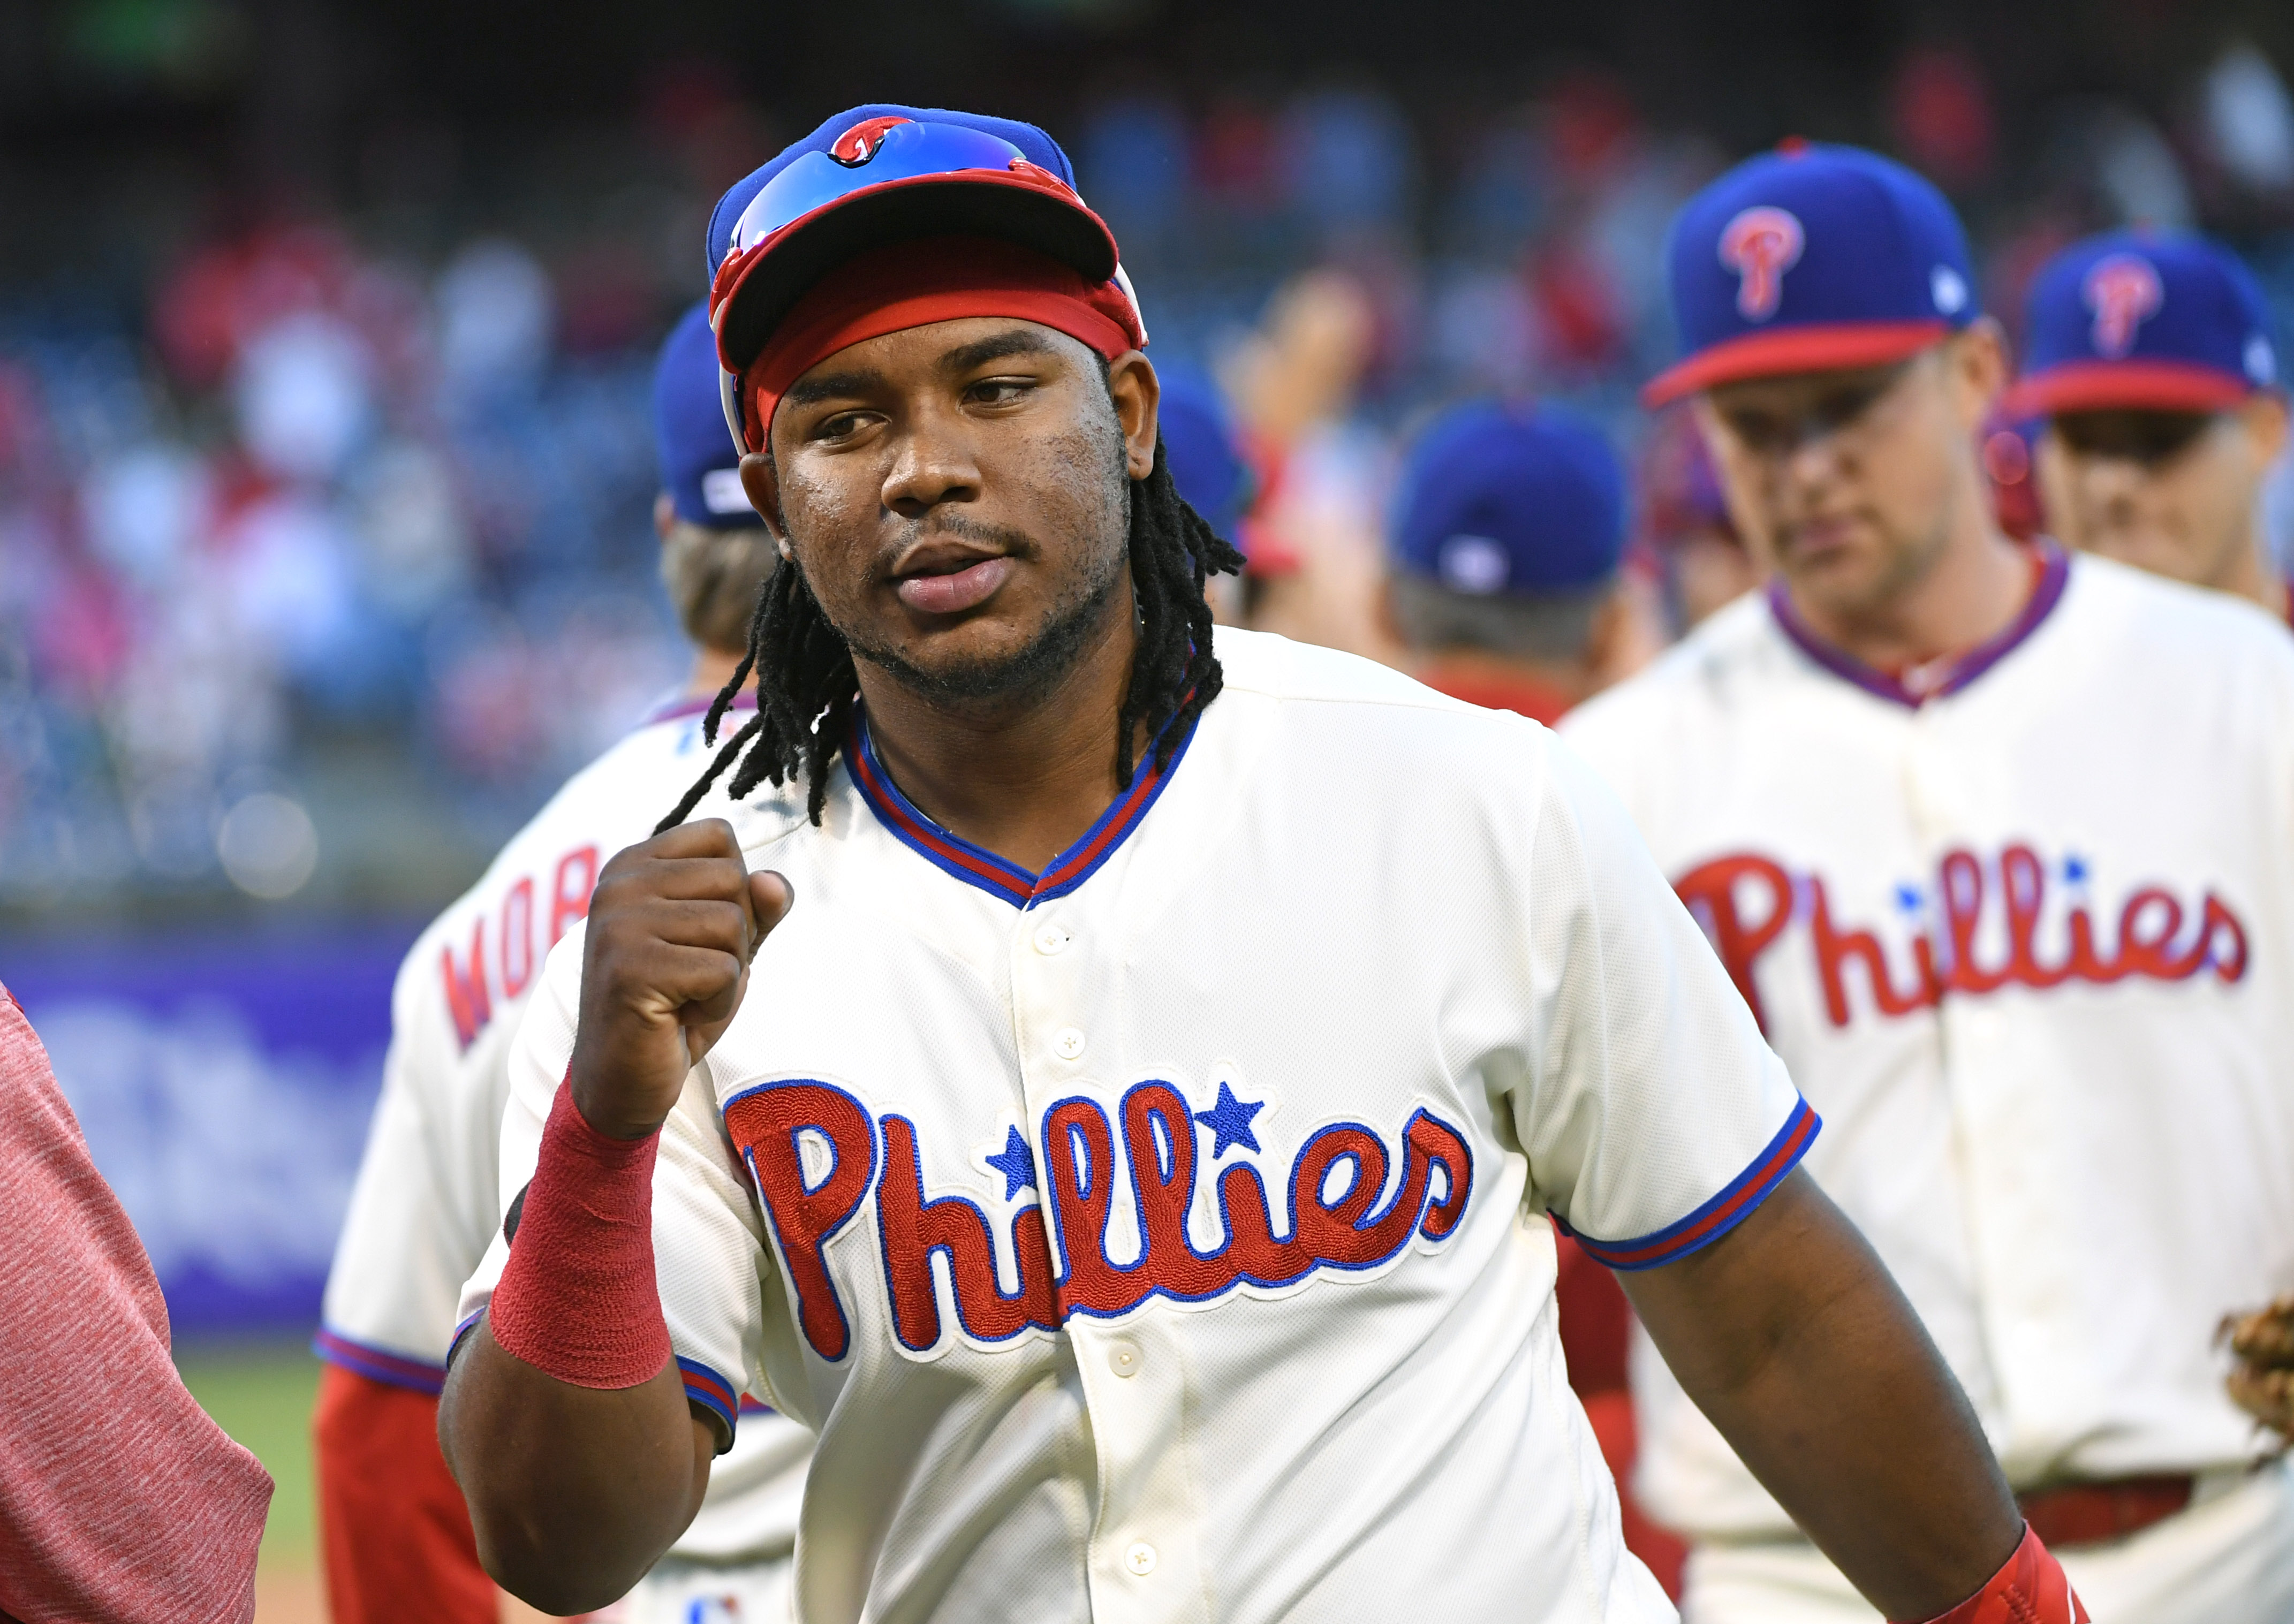 Maikel Franco suspended by Dominican team for partying